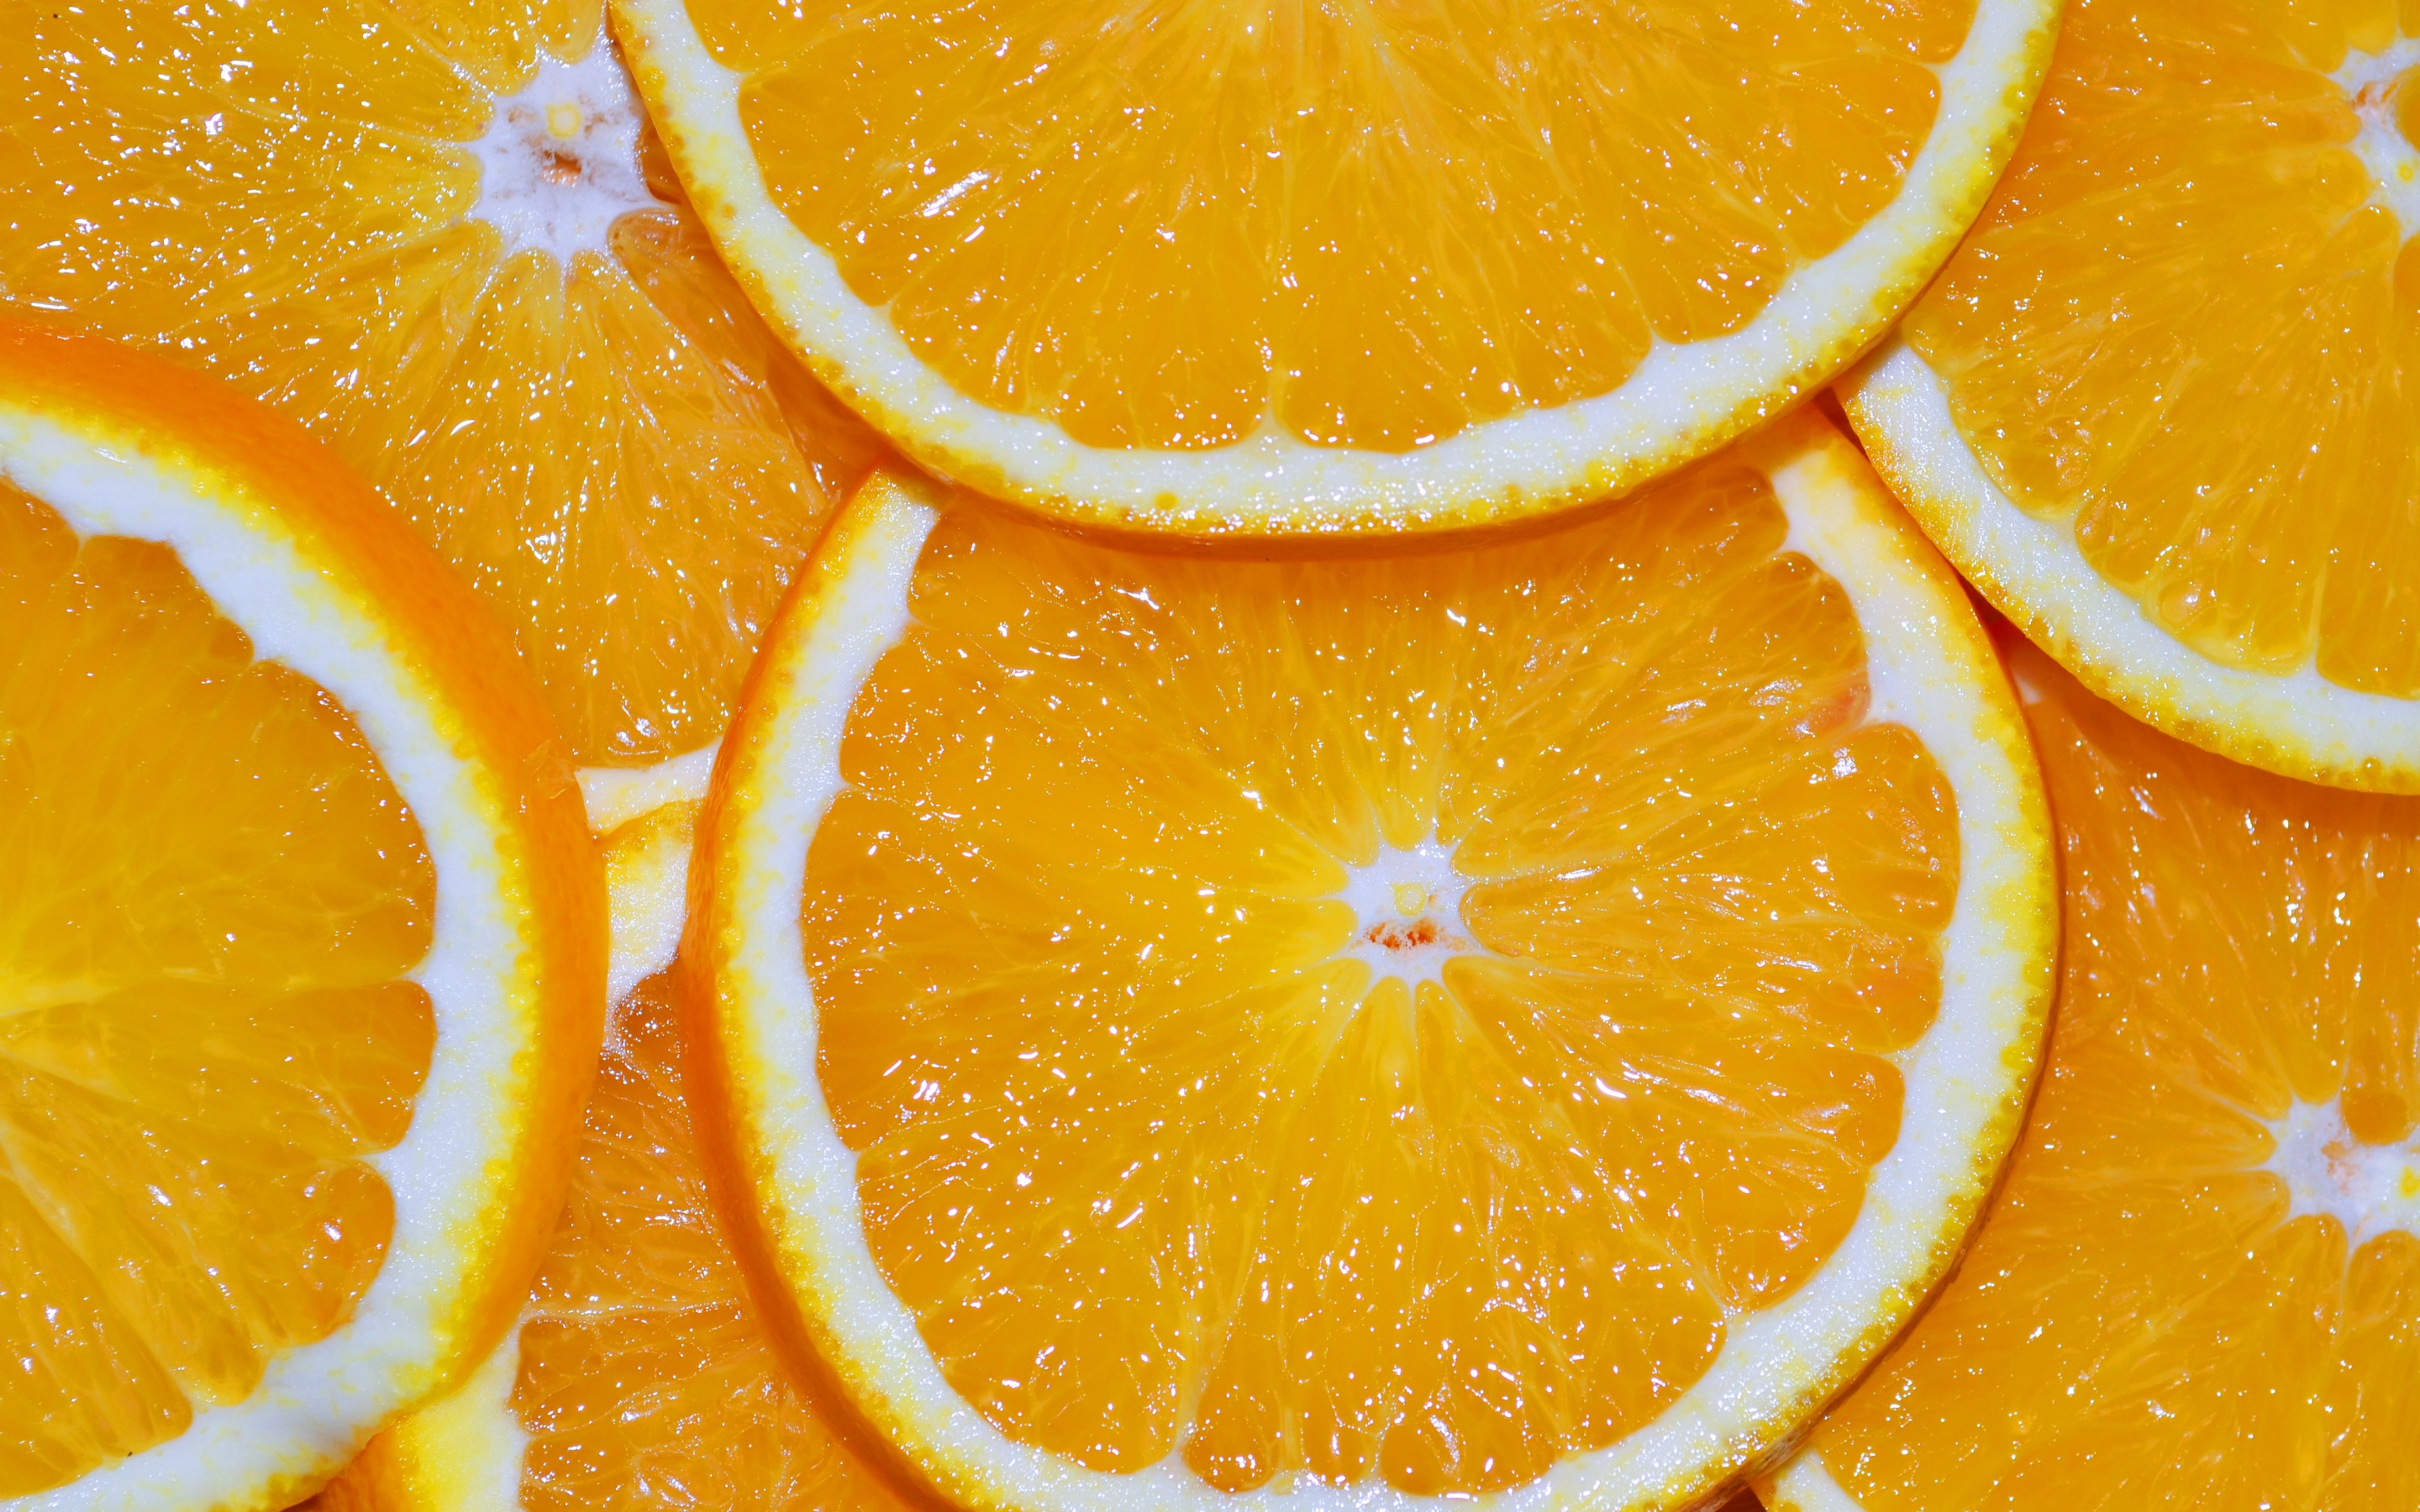 Oranges Close Up Wallpaper 22576